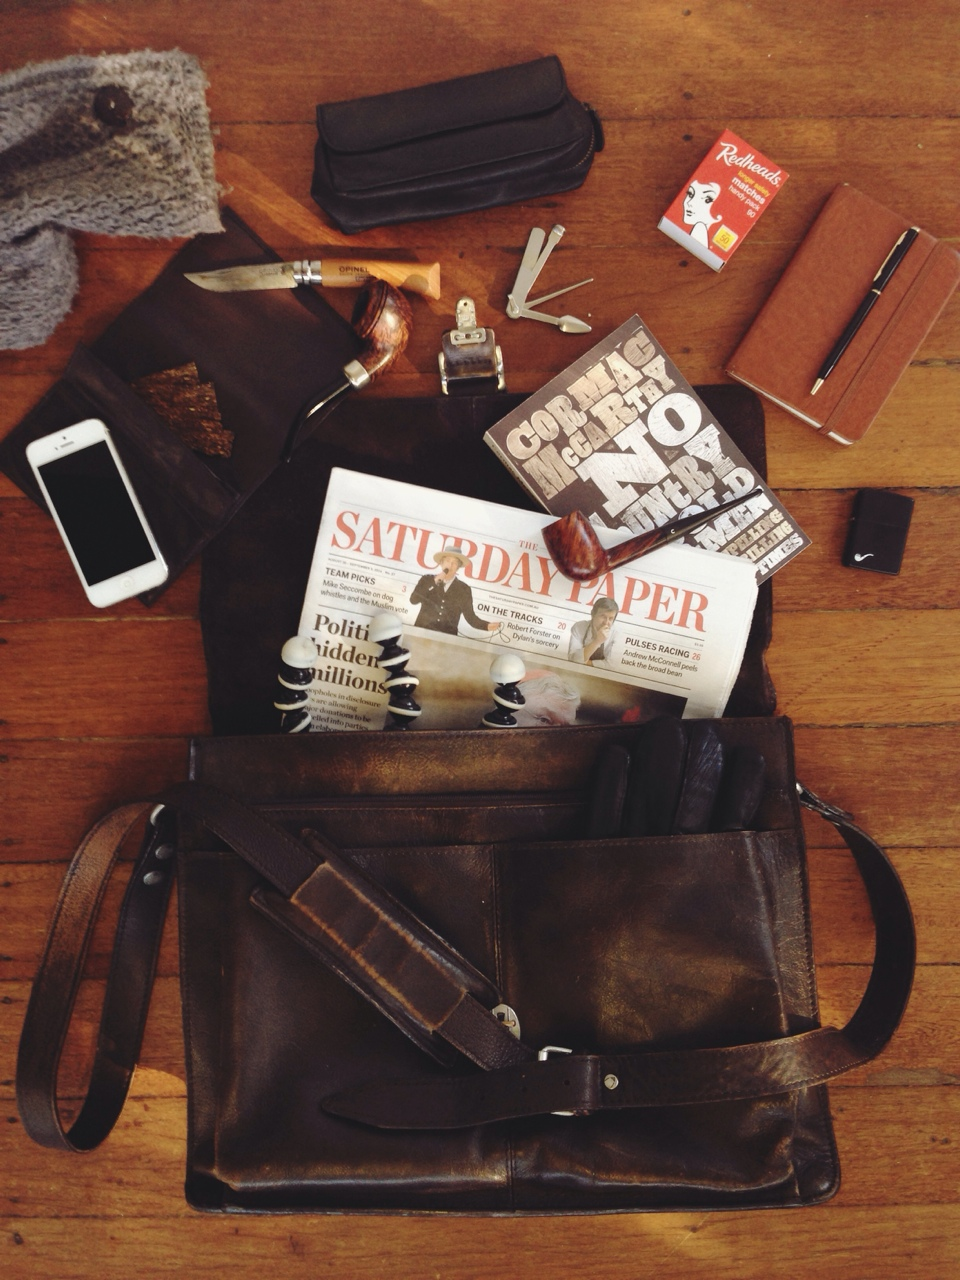 "thesillyoldbear :     What's in my bag?    •7"" Opinel  •Pipes - Comoy's Tradition & Peterson Irish Army 999  •Tobacco pouches w/ Orlik Golden Sliced & my Opium Den blend  •Pipe Zippo, czech tool & spare matches  •Notepad & pen  •The Saturday Paper  •Cormac McCarthy's No Country For Old Men  •Gorillapod  •iPhone 5  •Driving gloves & scarf"